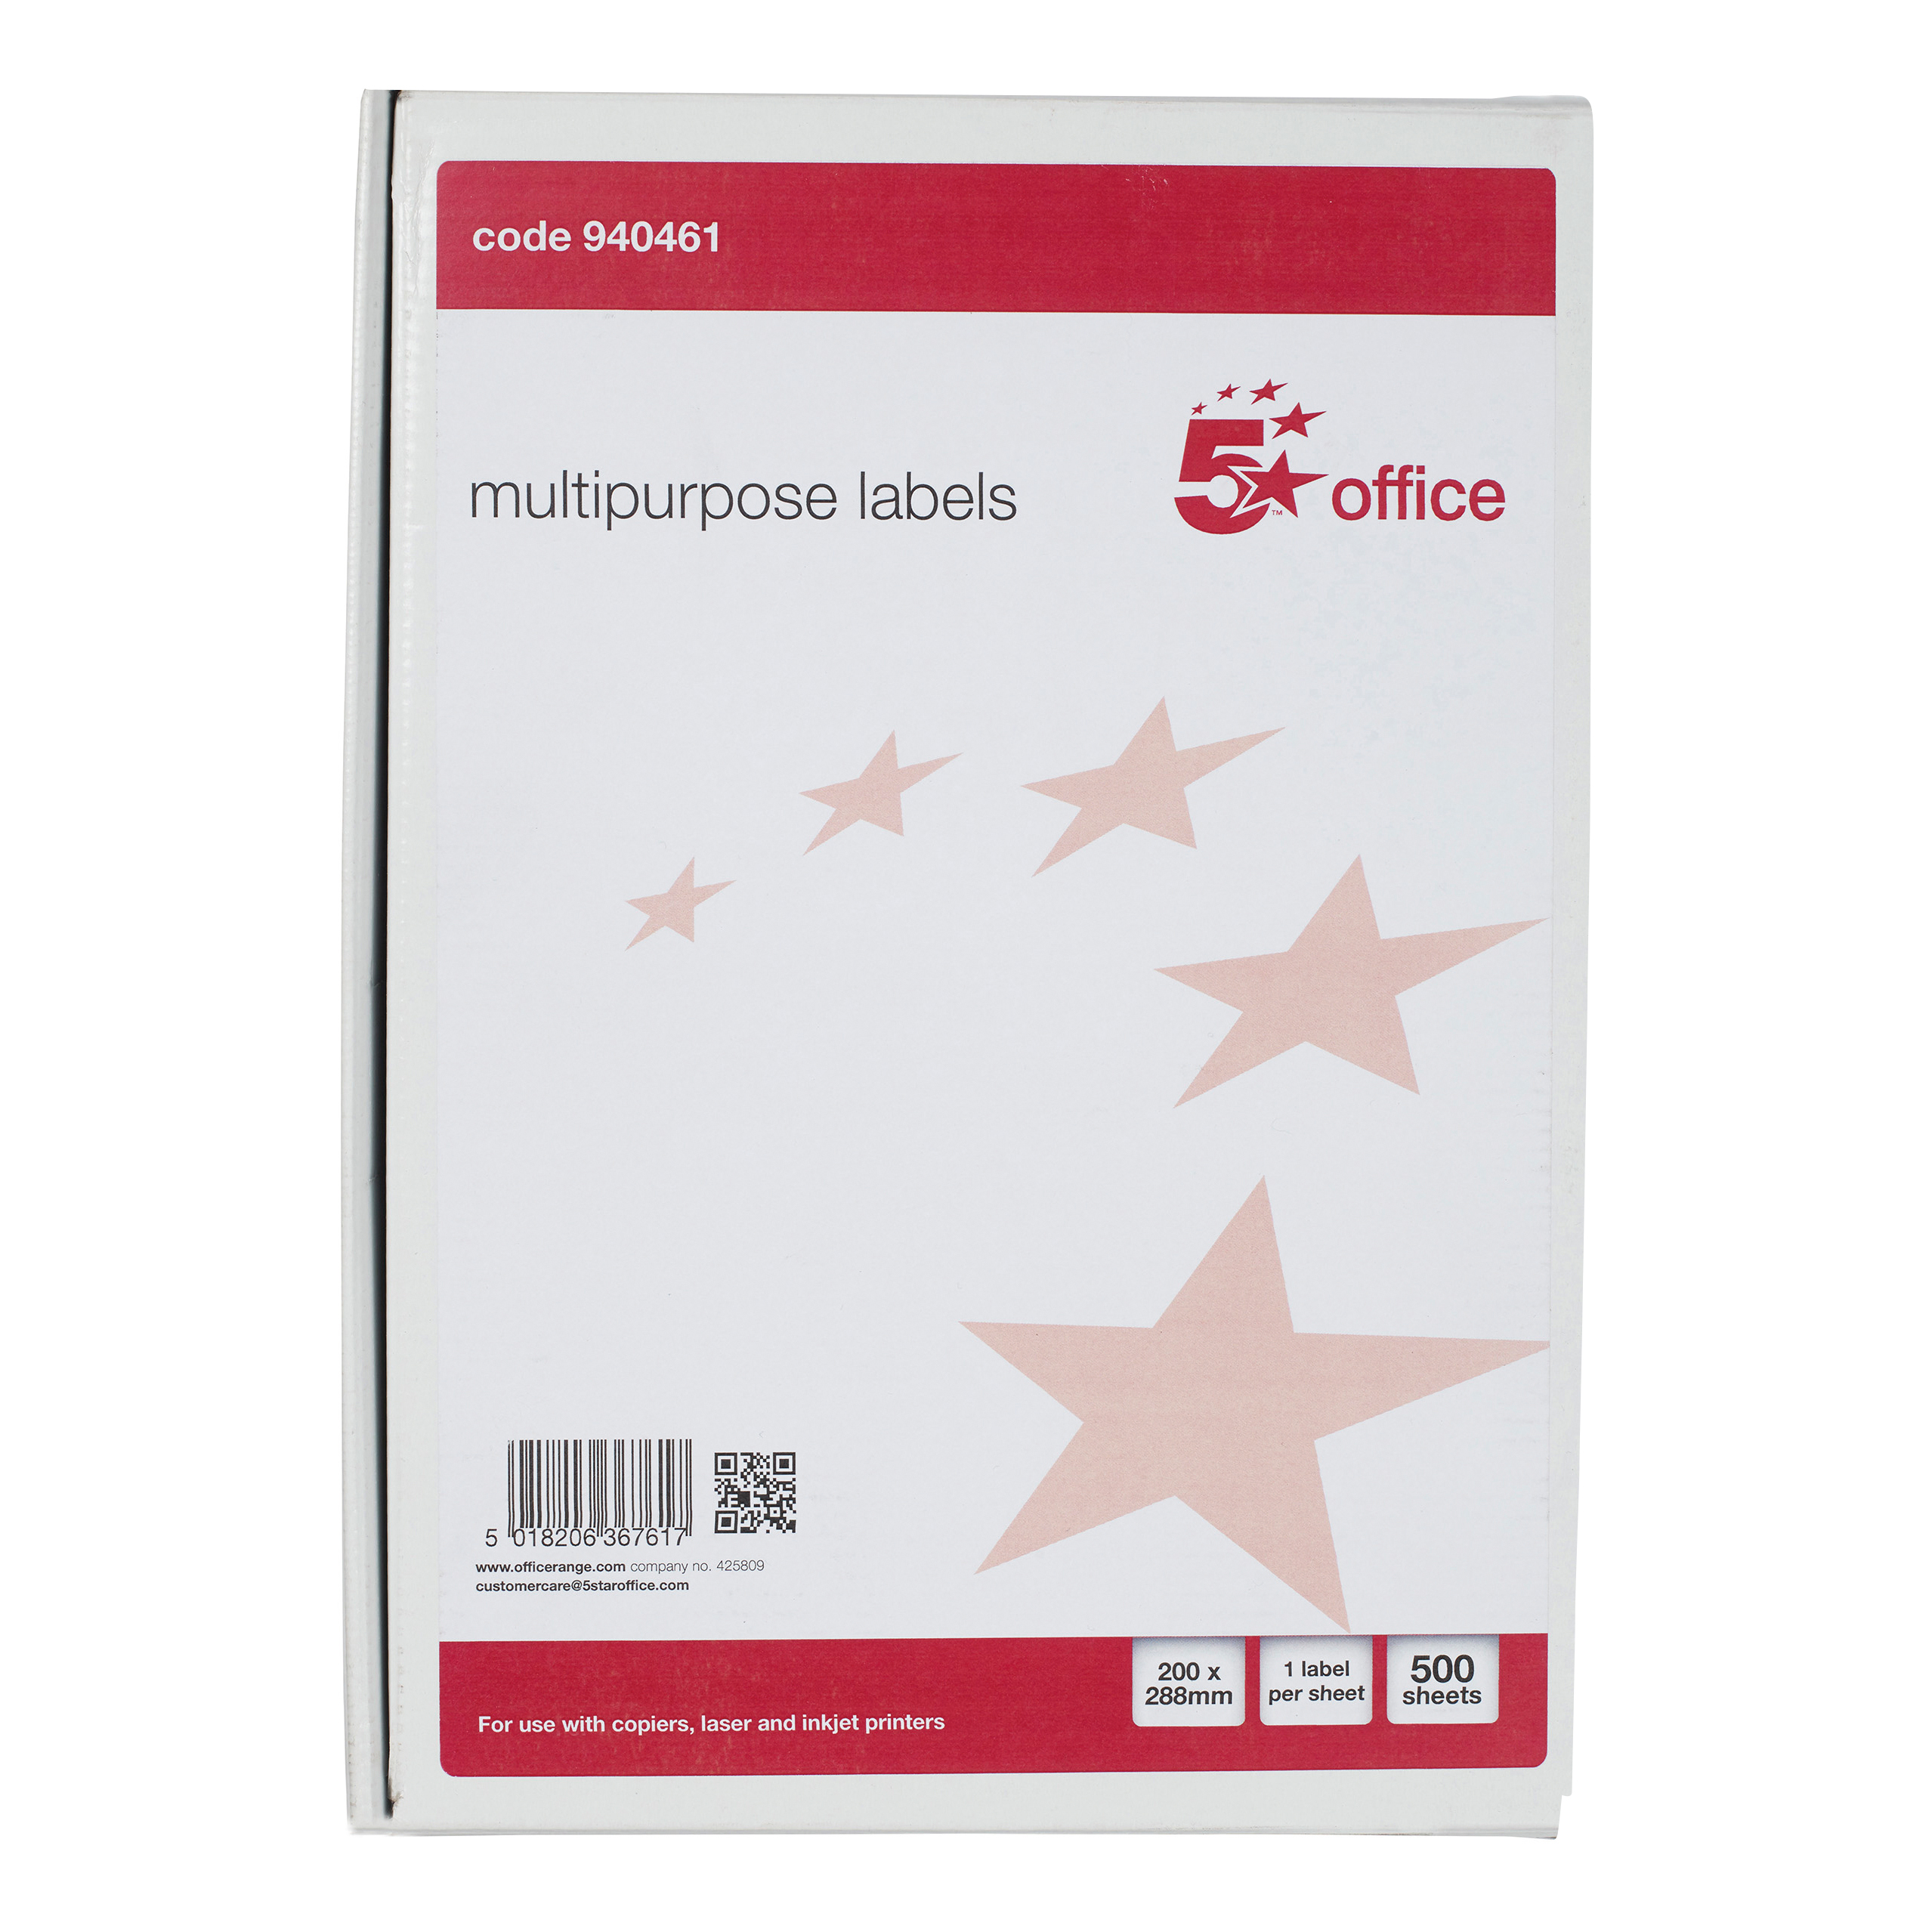 5 Star Office Multipurpose Labels Laser Copier and Inkjet 1 per Sheet 200x288mm White Pack 500